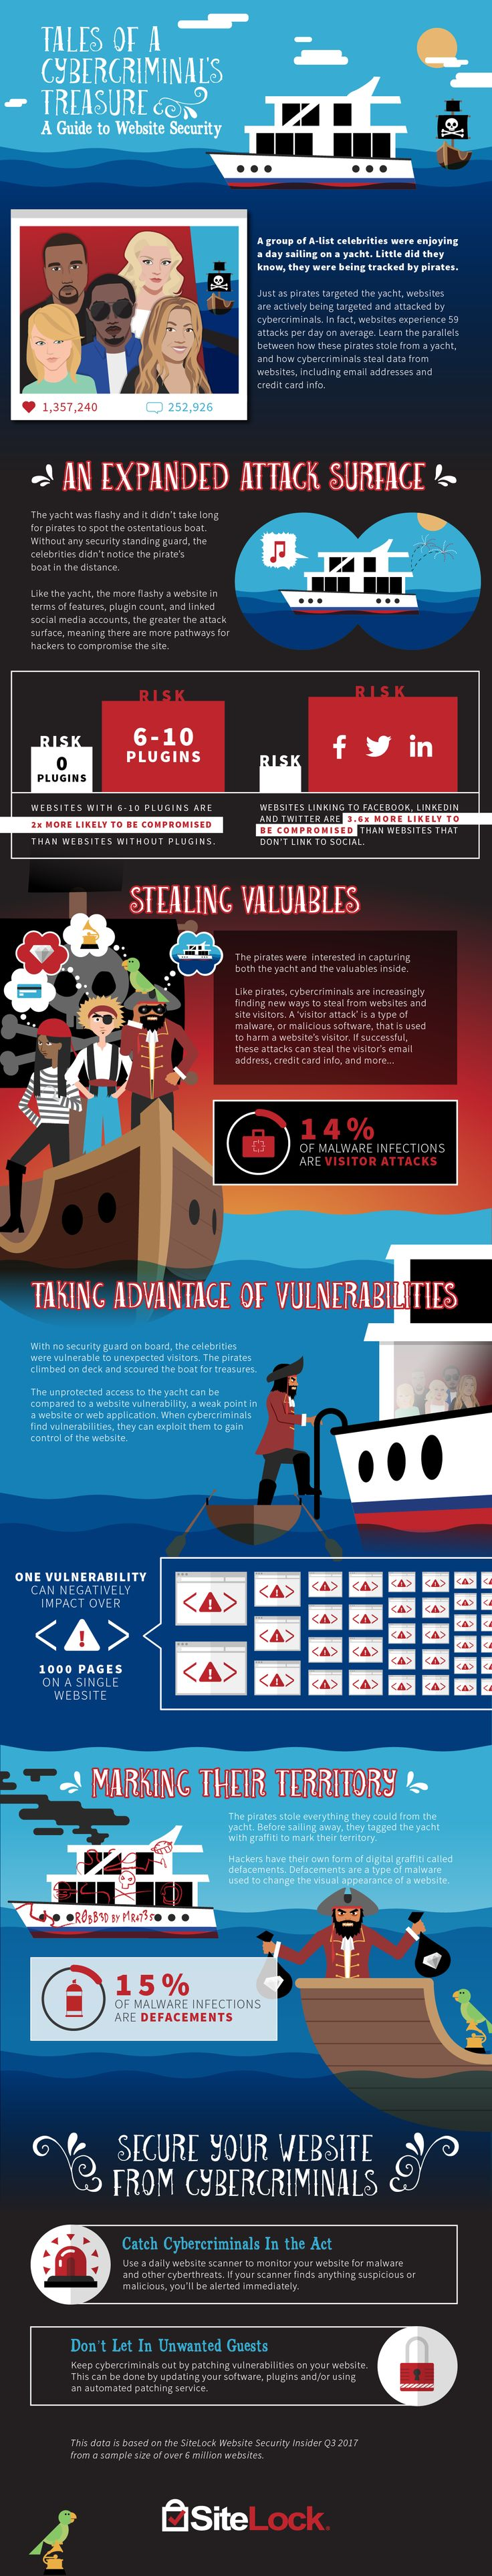 Tales of A Cybercriminal's Treasure: A Guide to Website Security [Infographic] / Digital Information World